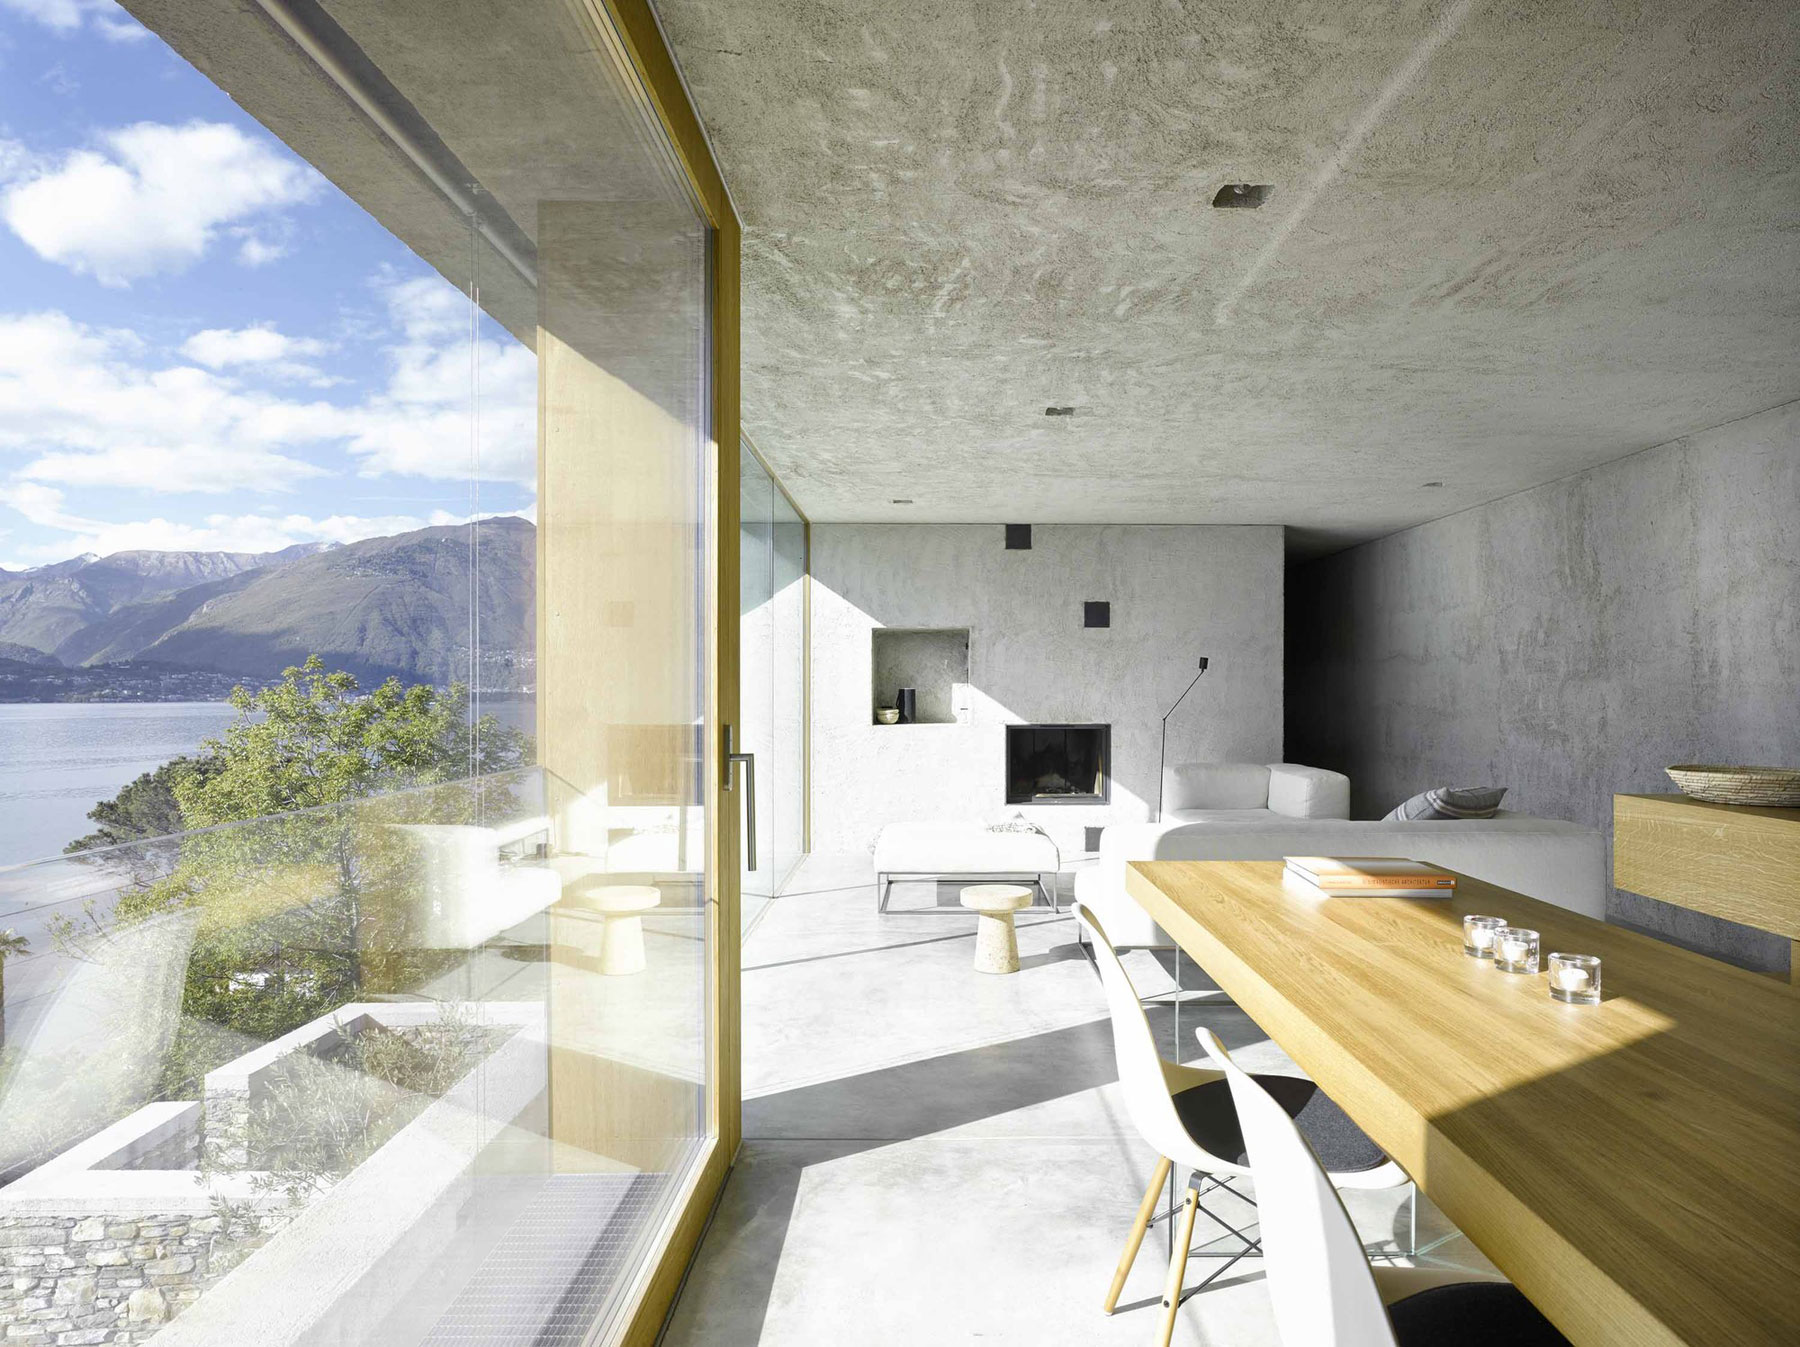 House-in-Ranzo-12